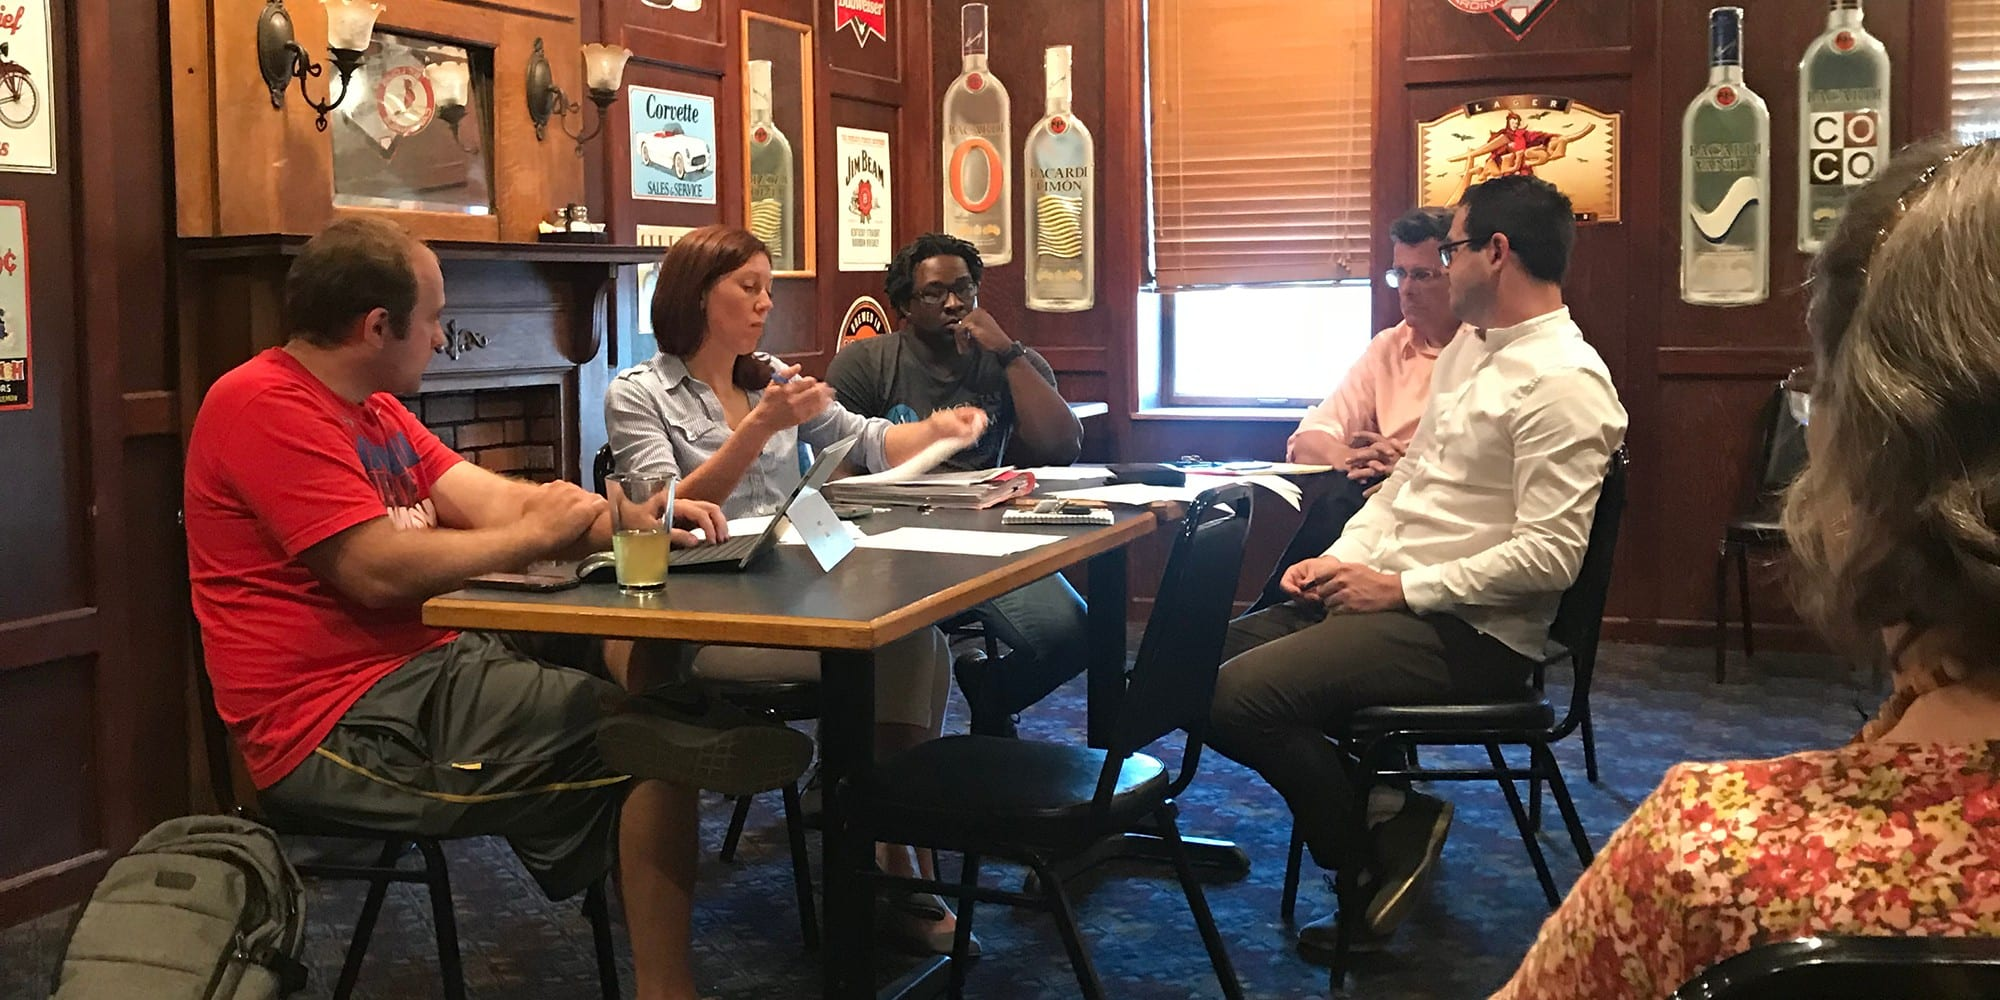 The Dutchtown CID Board of Directors meeting at Crusoe's on May 24th, 2018. Photo by Nate Lindsey.